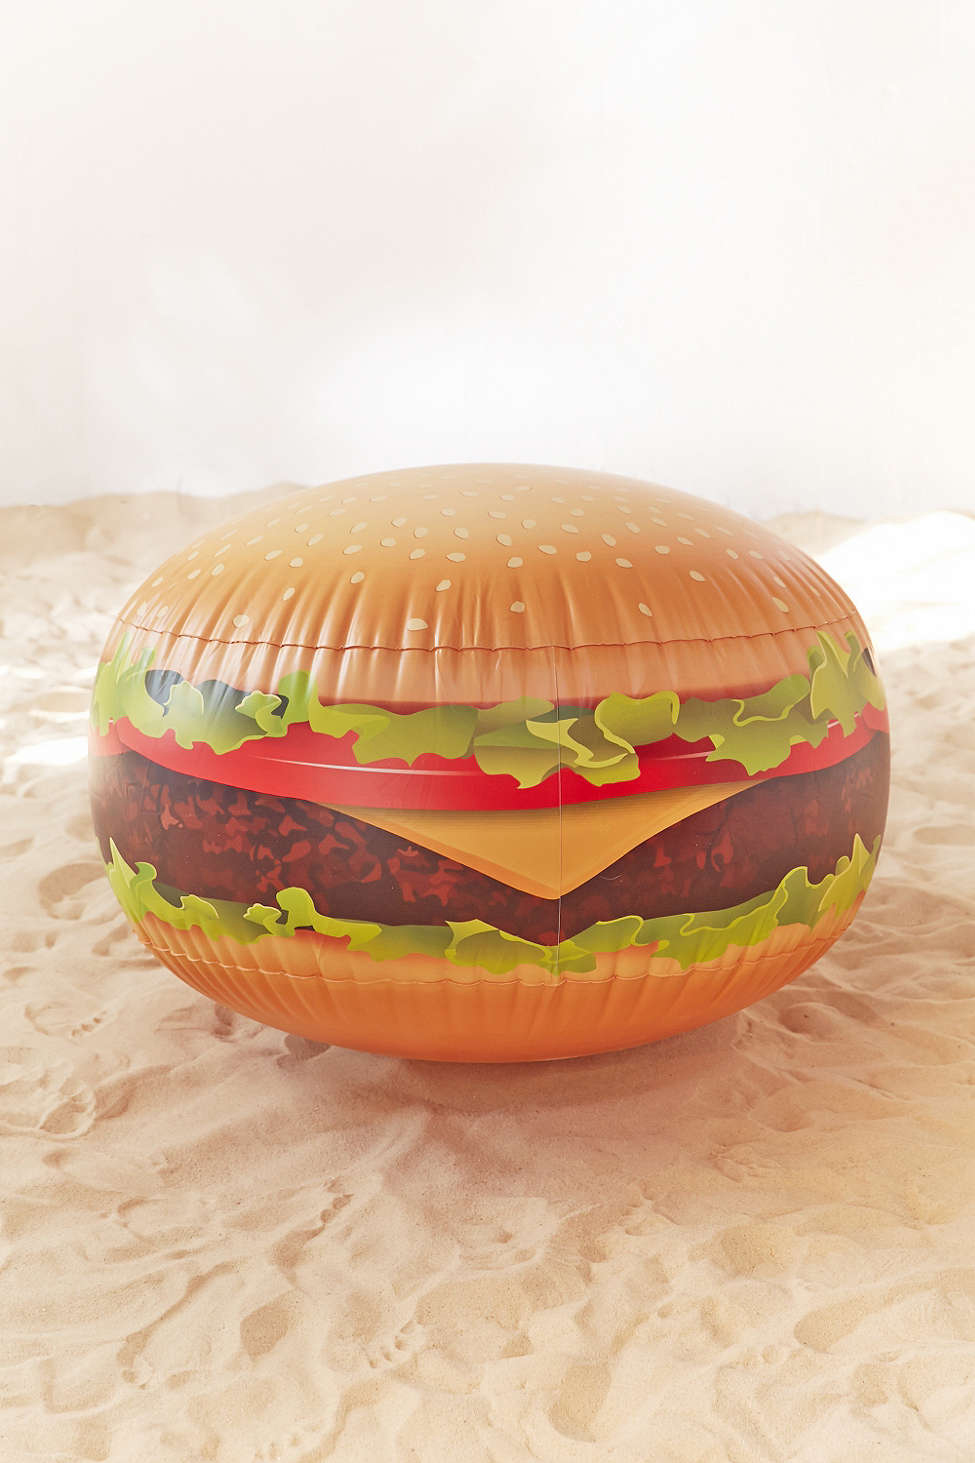 Cheeseburger Beach Ball by Urban Outfitters $32